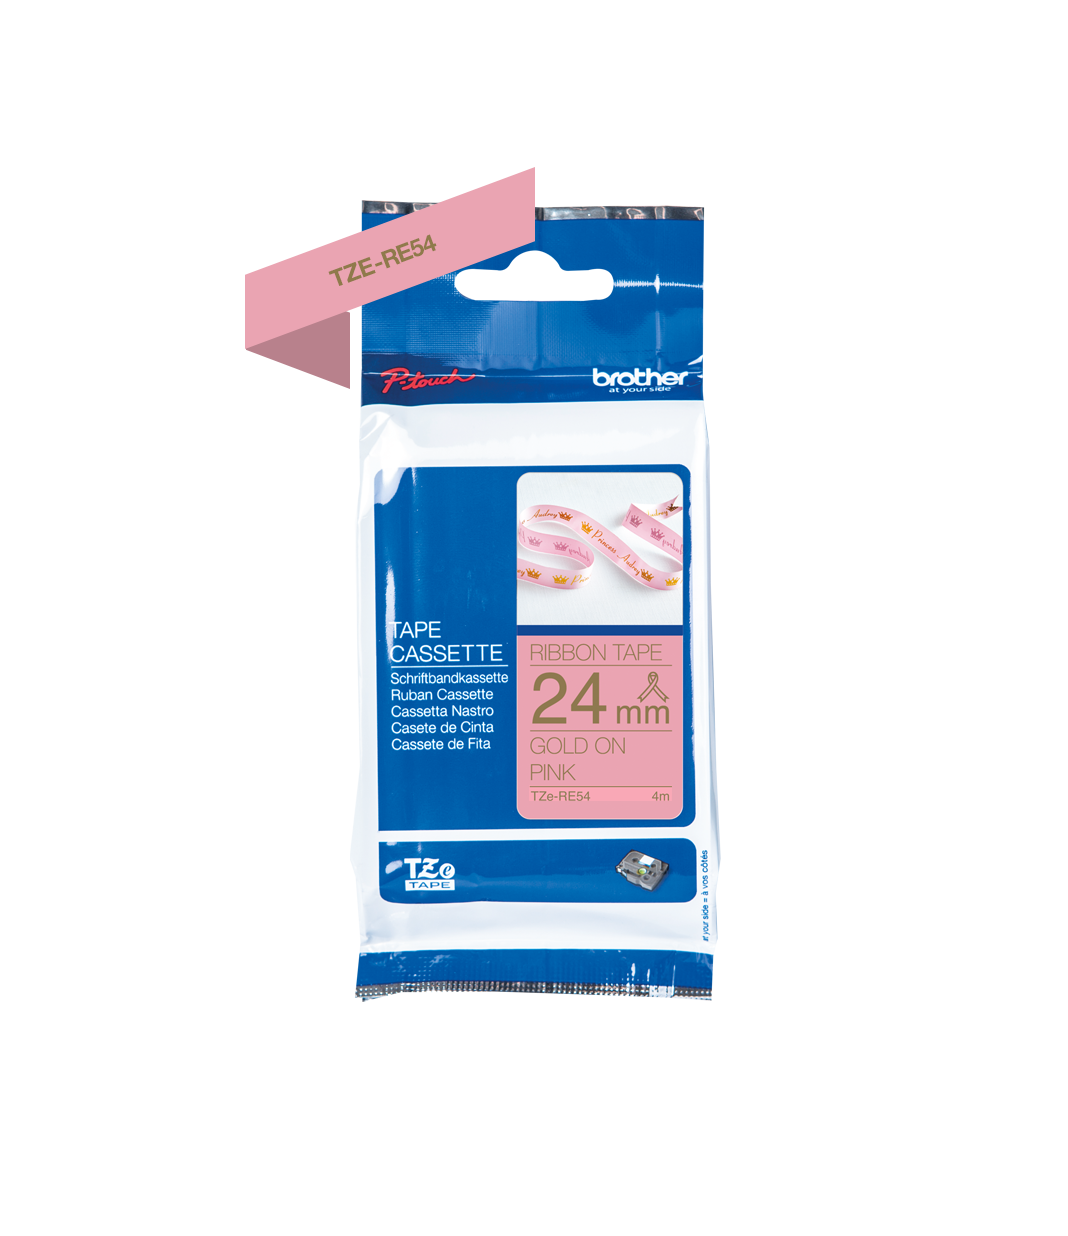 Brother Tape Ribbon Cassette Refill Brother TZe Gold on Pink Pastel Pink P-Touch Embellish Lite Craft Anniversary Wedding Australia Discount Dealer Retailer